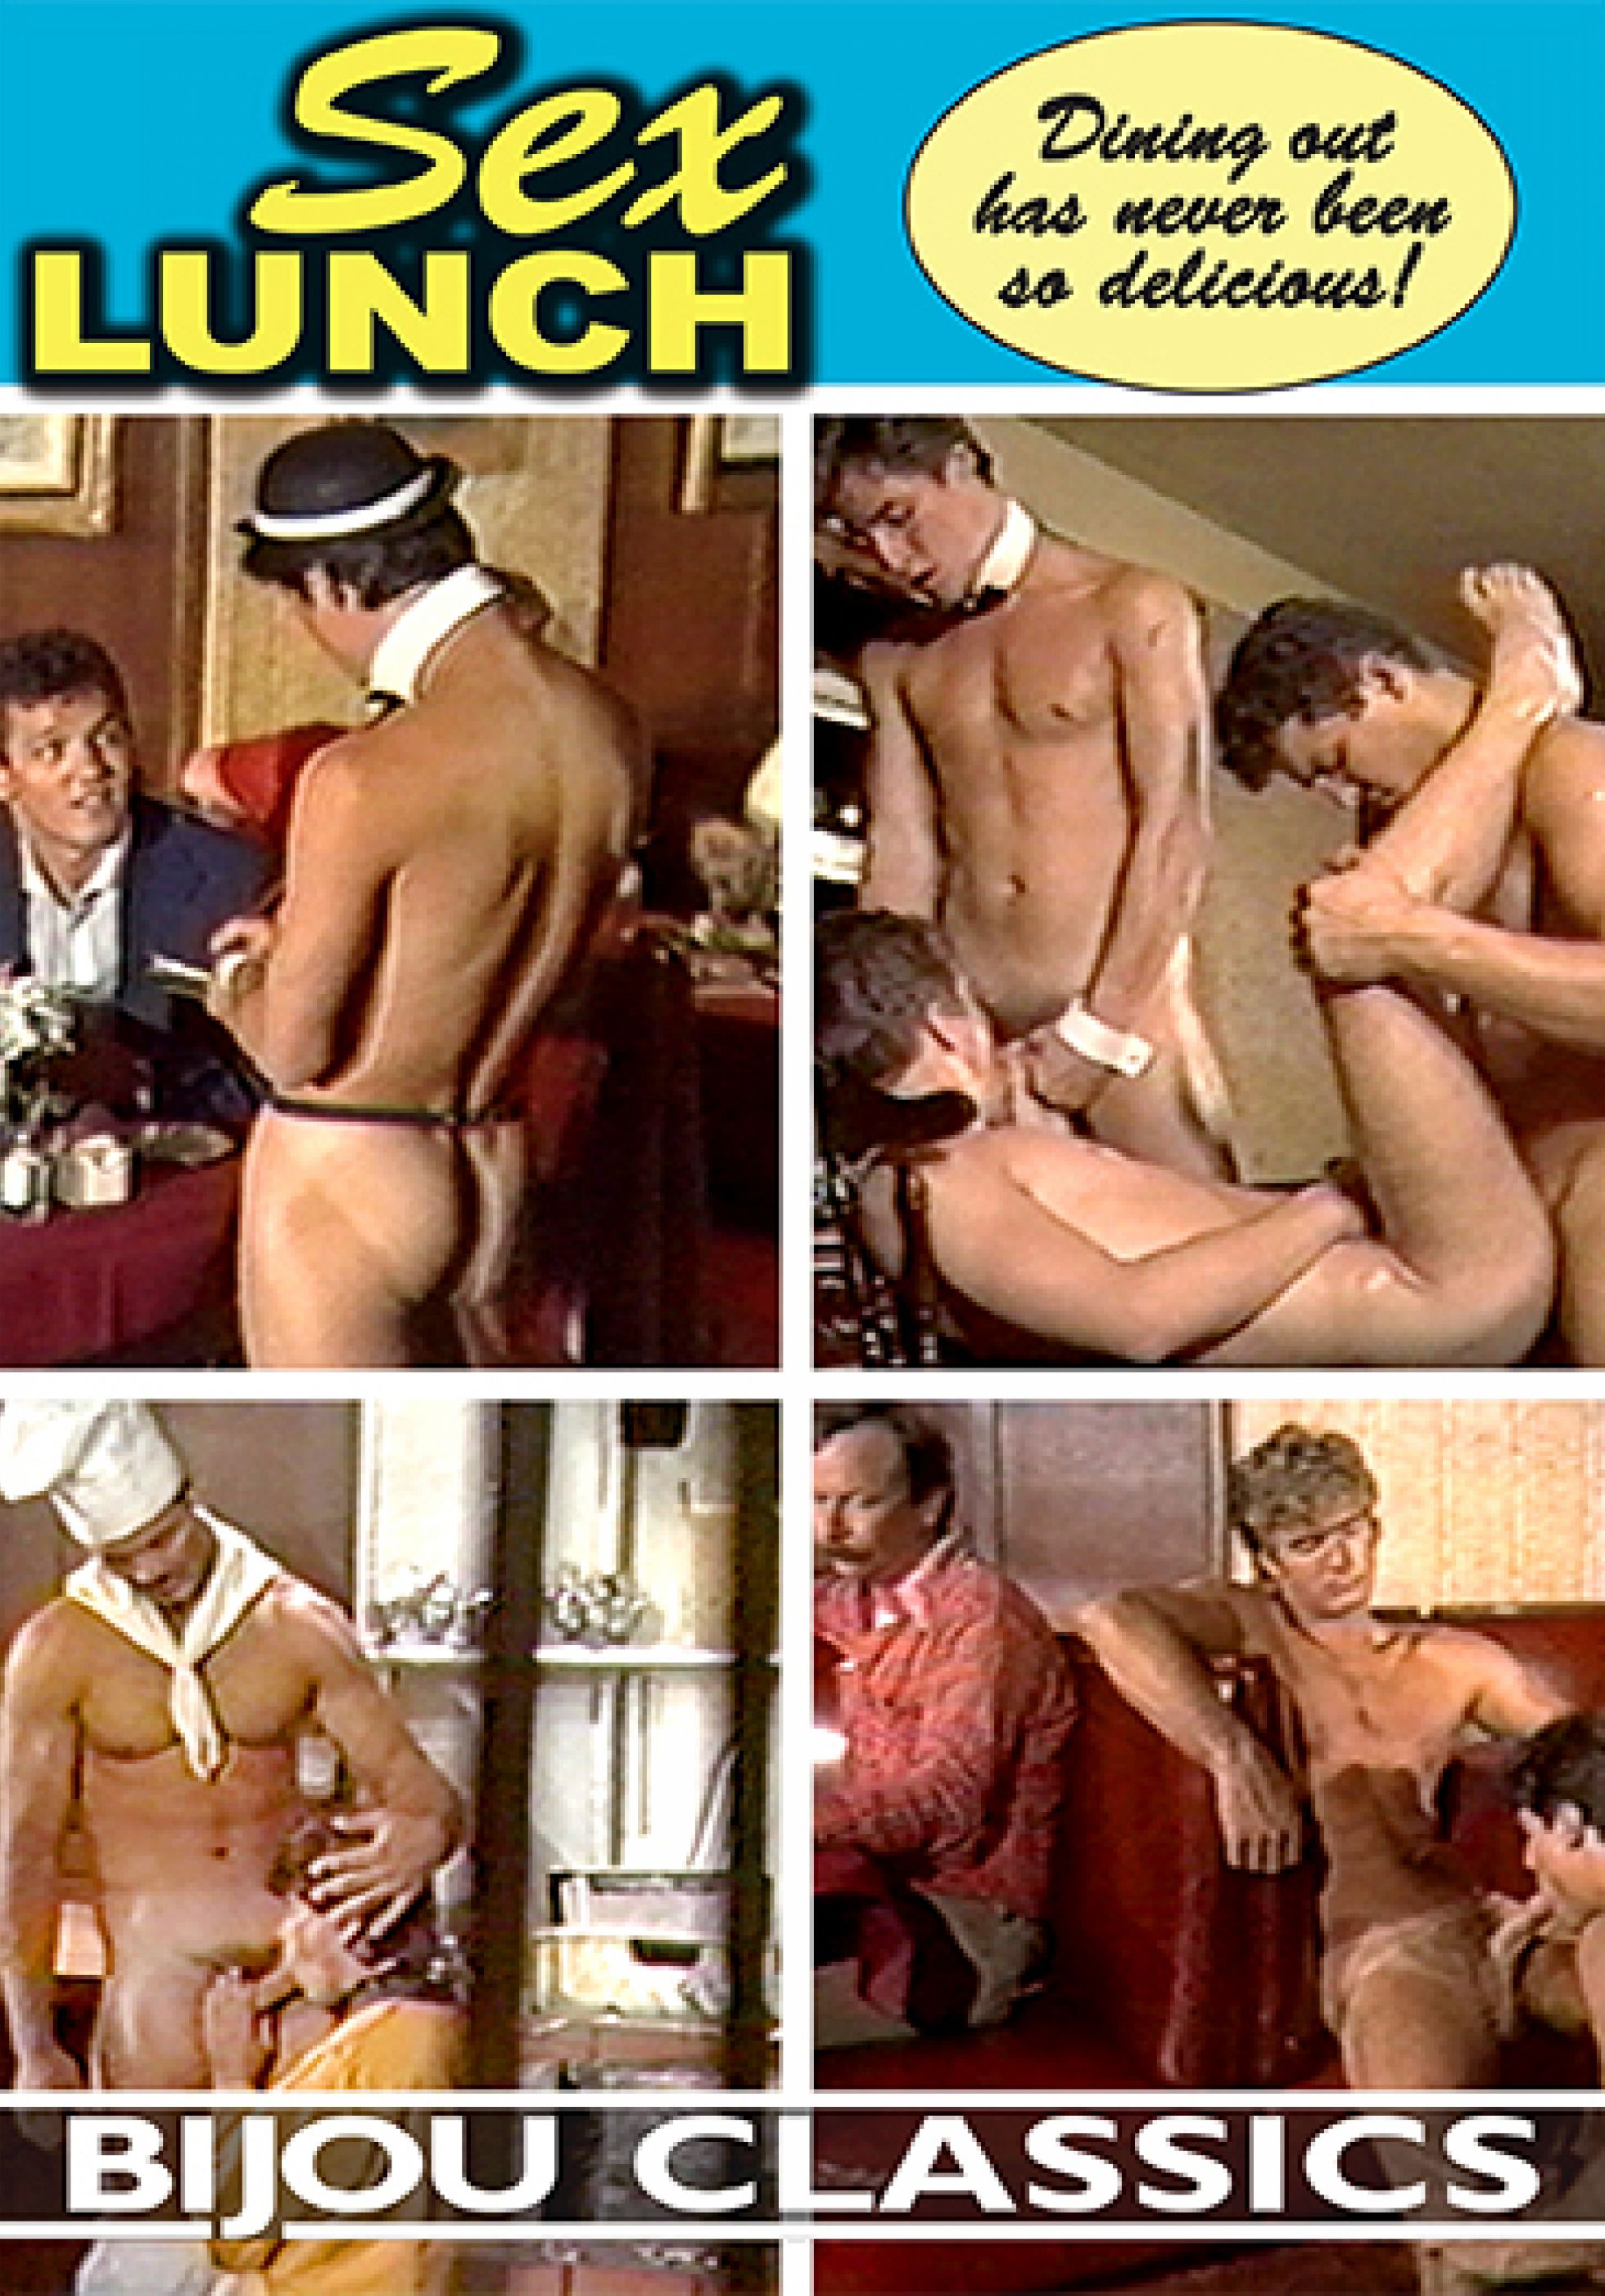 Just pelicula porno gay retro